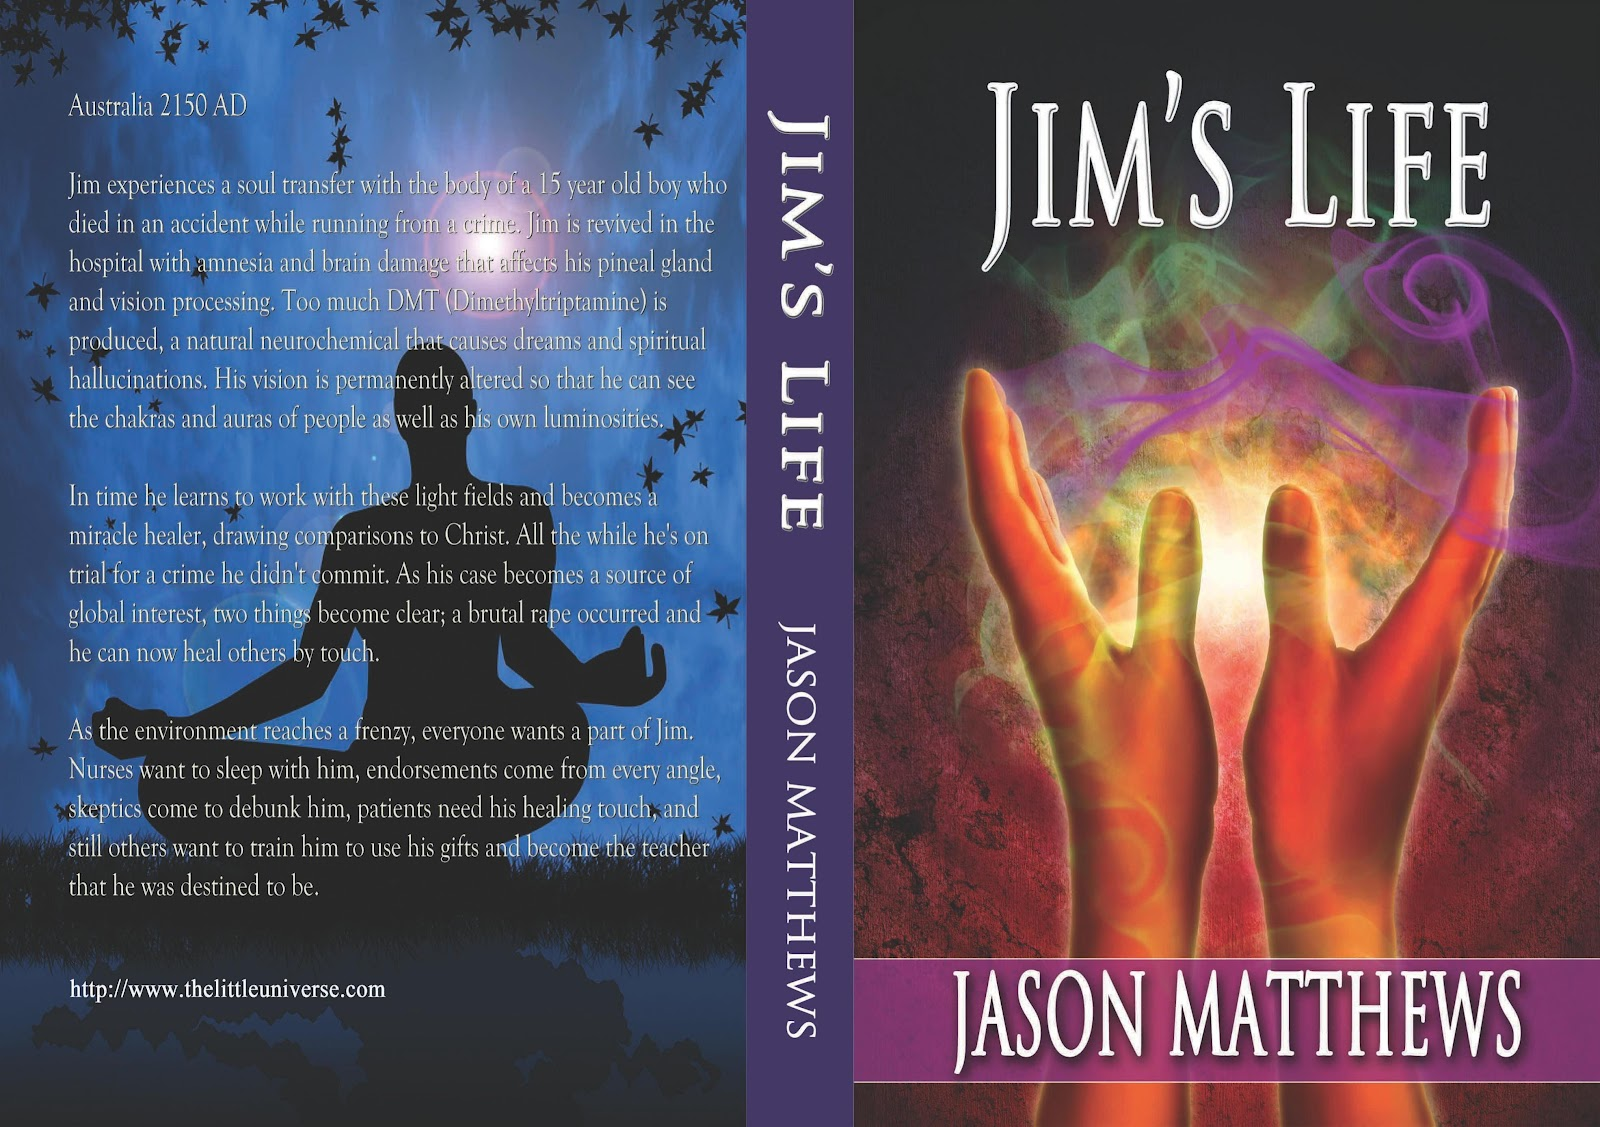 Jason matthews novels self publish connect 2012 imagine waking up in a new body in a hospital room with complete amnesia and brain damage that enables you to see the auras and chakras of people fandeluxe Images